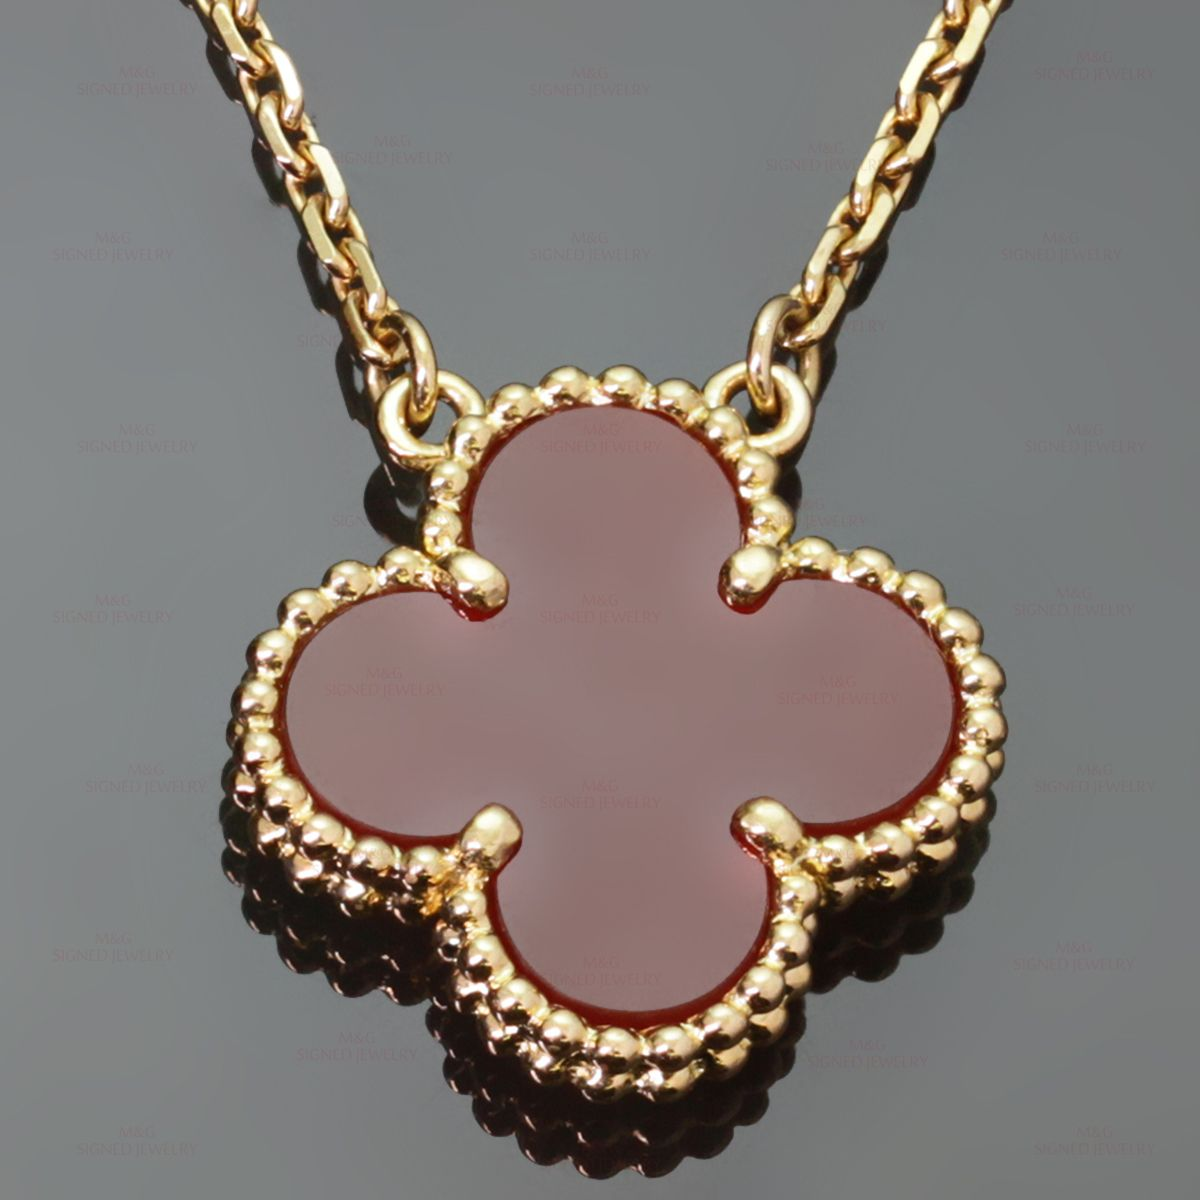 on cleef gold rose heart product alhambra chain pendant sweet arpels van